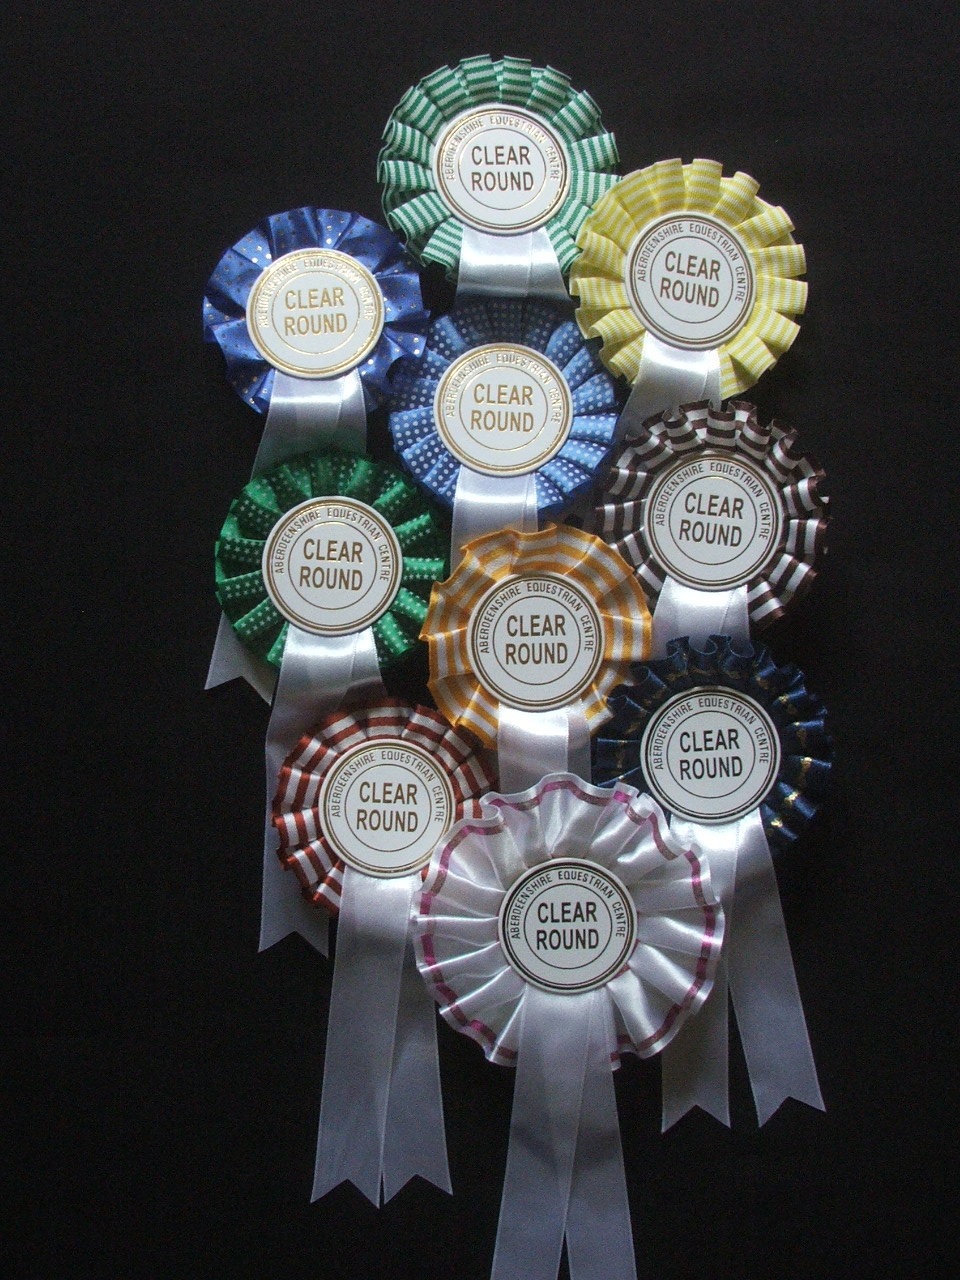 quality and fast rosette supplier ring 01651 891948